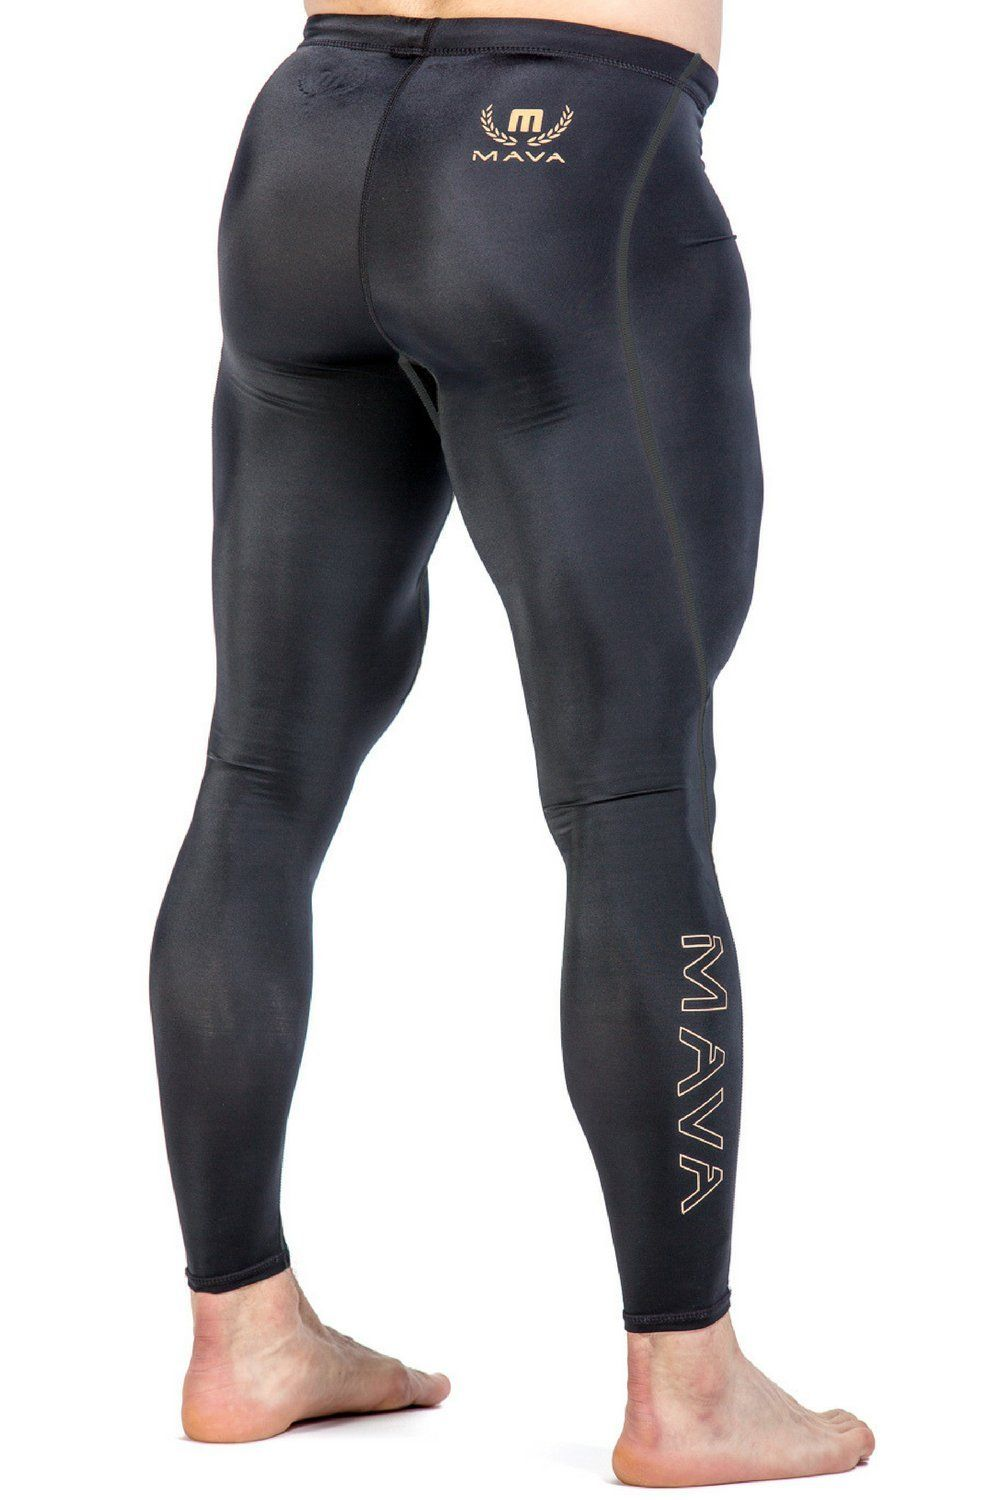 Mava Men S Compression Long Leggings Base Layer Tights For Workouts Running Cycling Sports Training Weightlifting All Tights Men